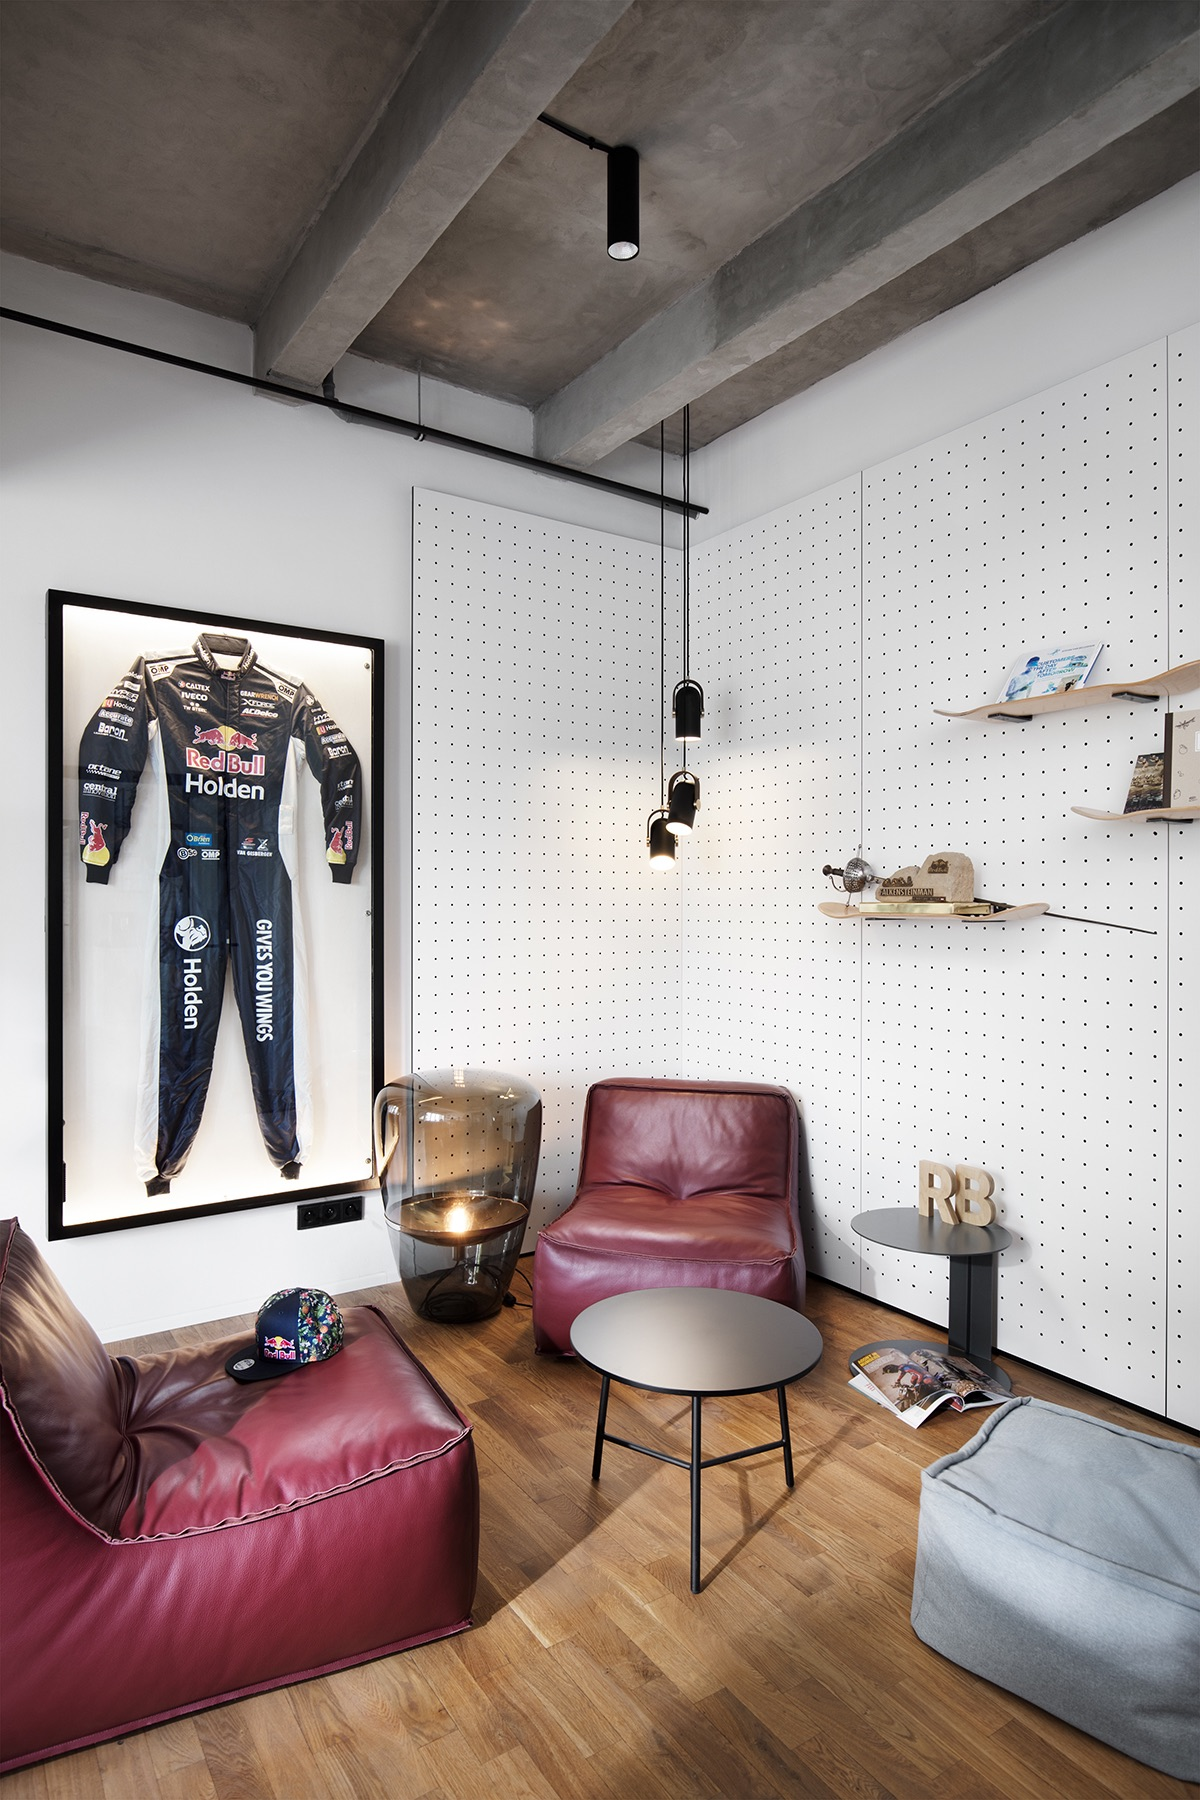 redbull-prague-office-12